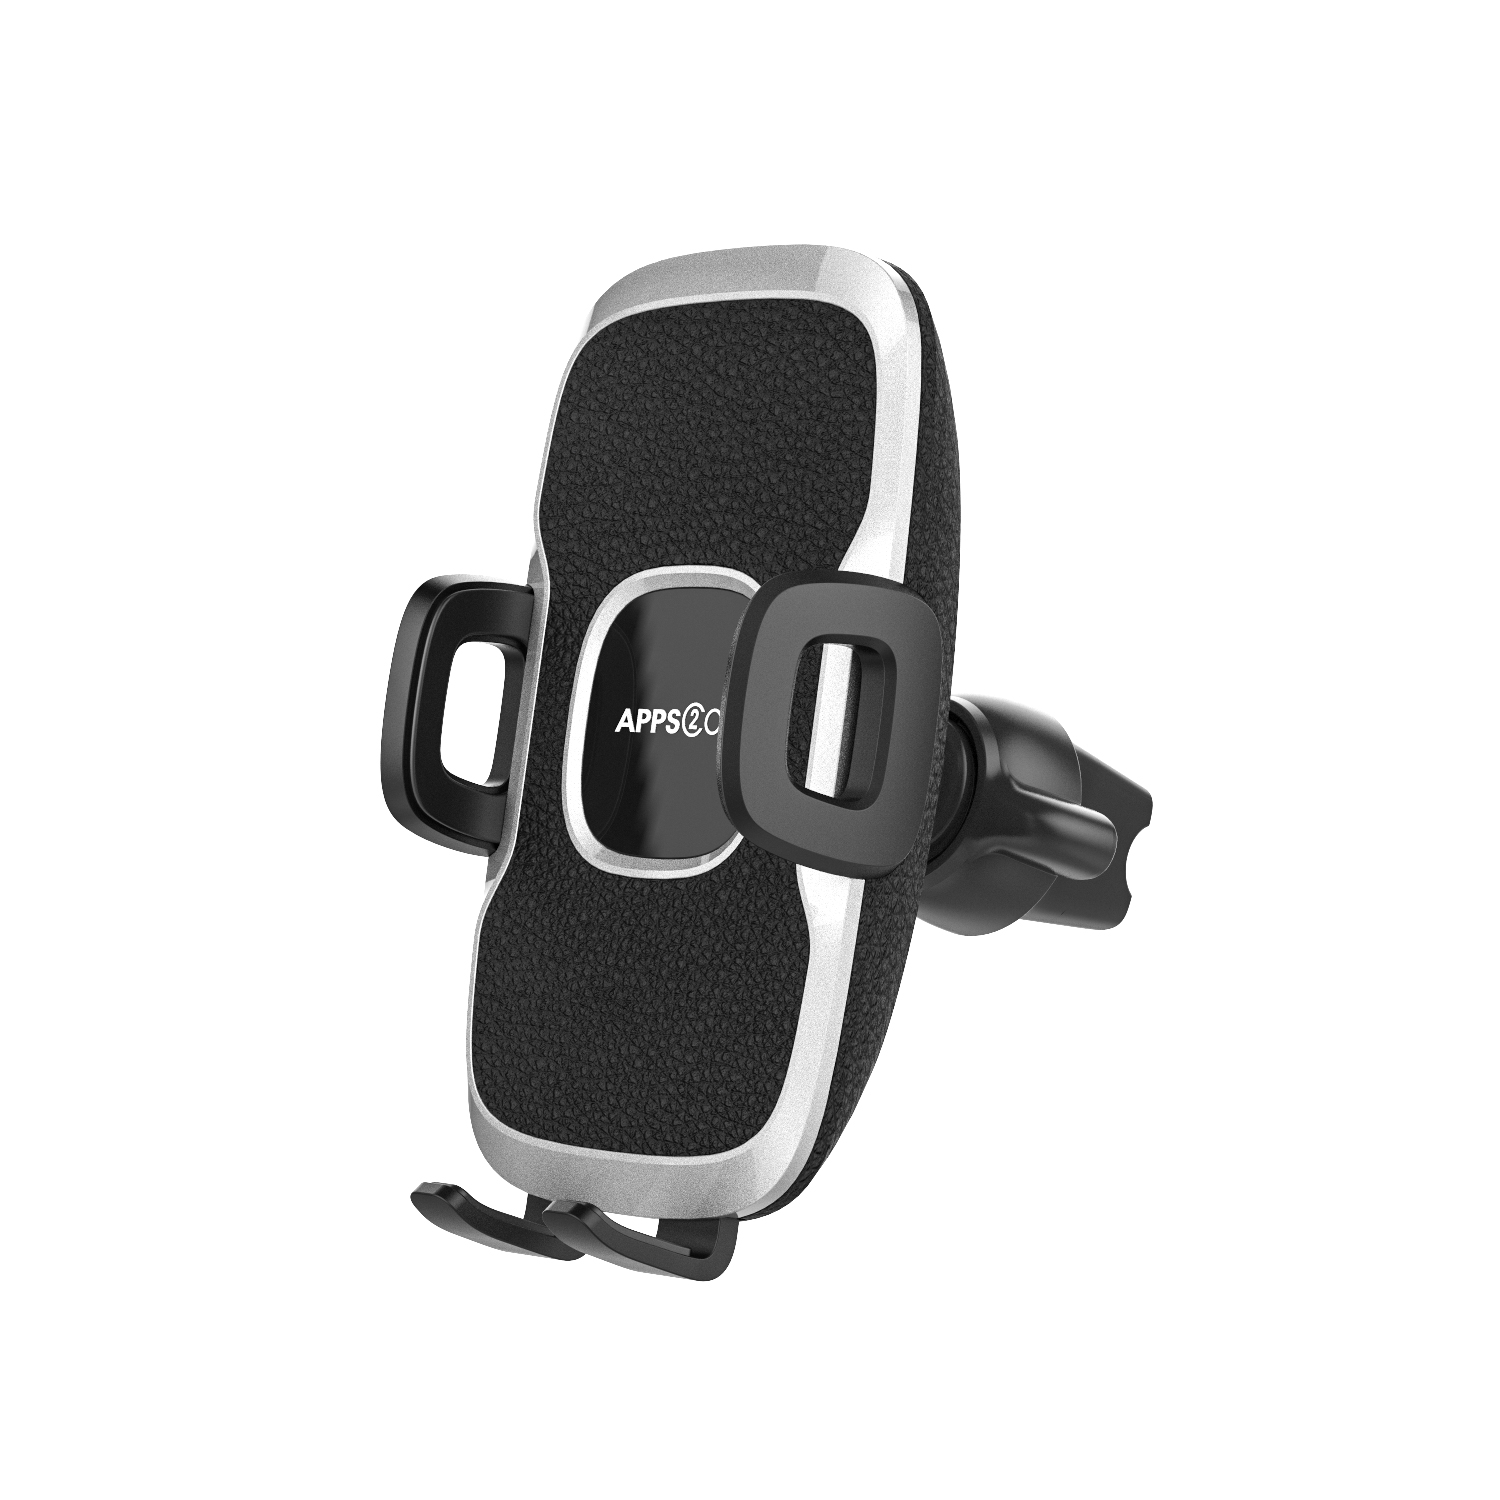 Mobile phone accessories 360degree adjustable cell phone stand holder magnetic phone holder for car air vent  mount car holder